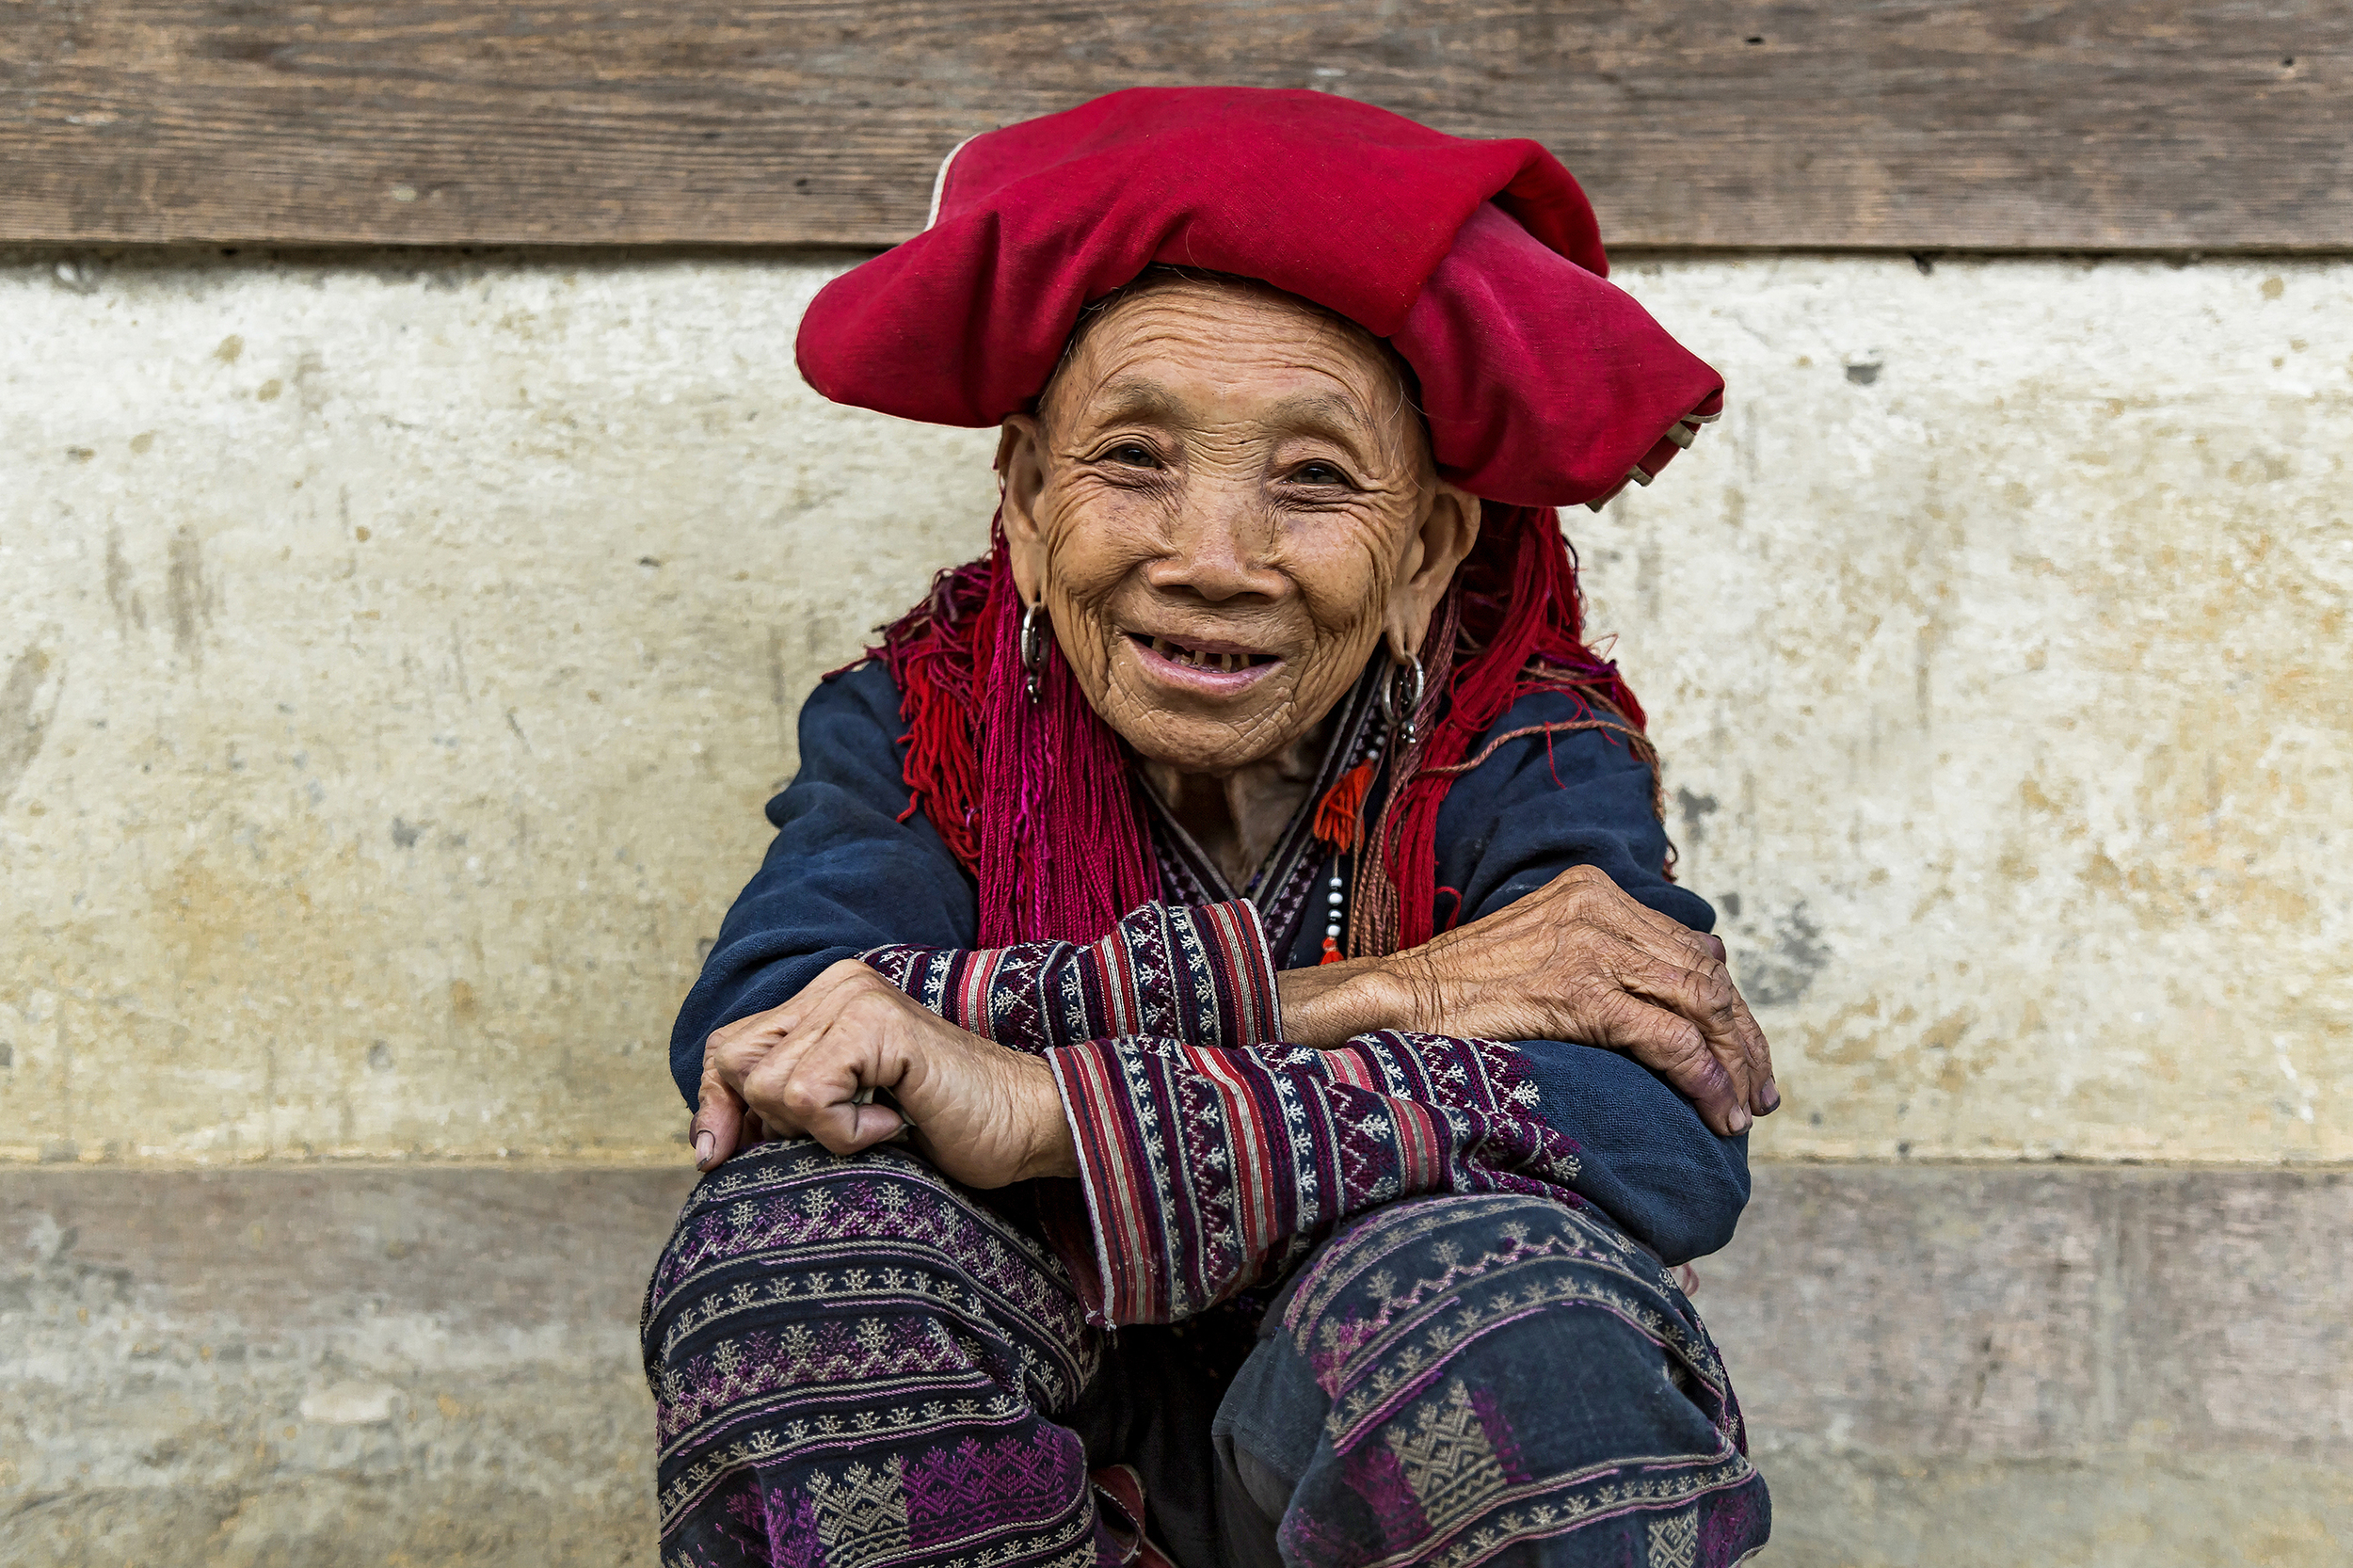 A local woman sitting and smiling